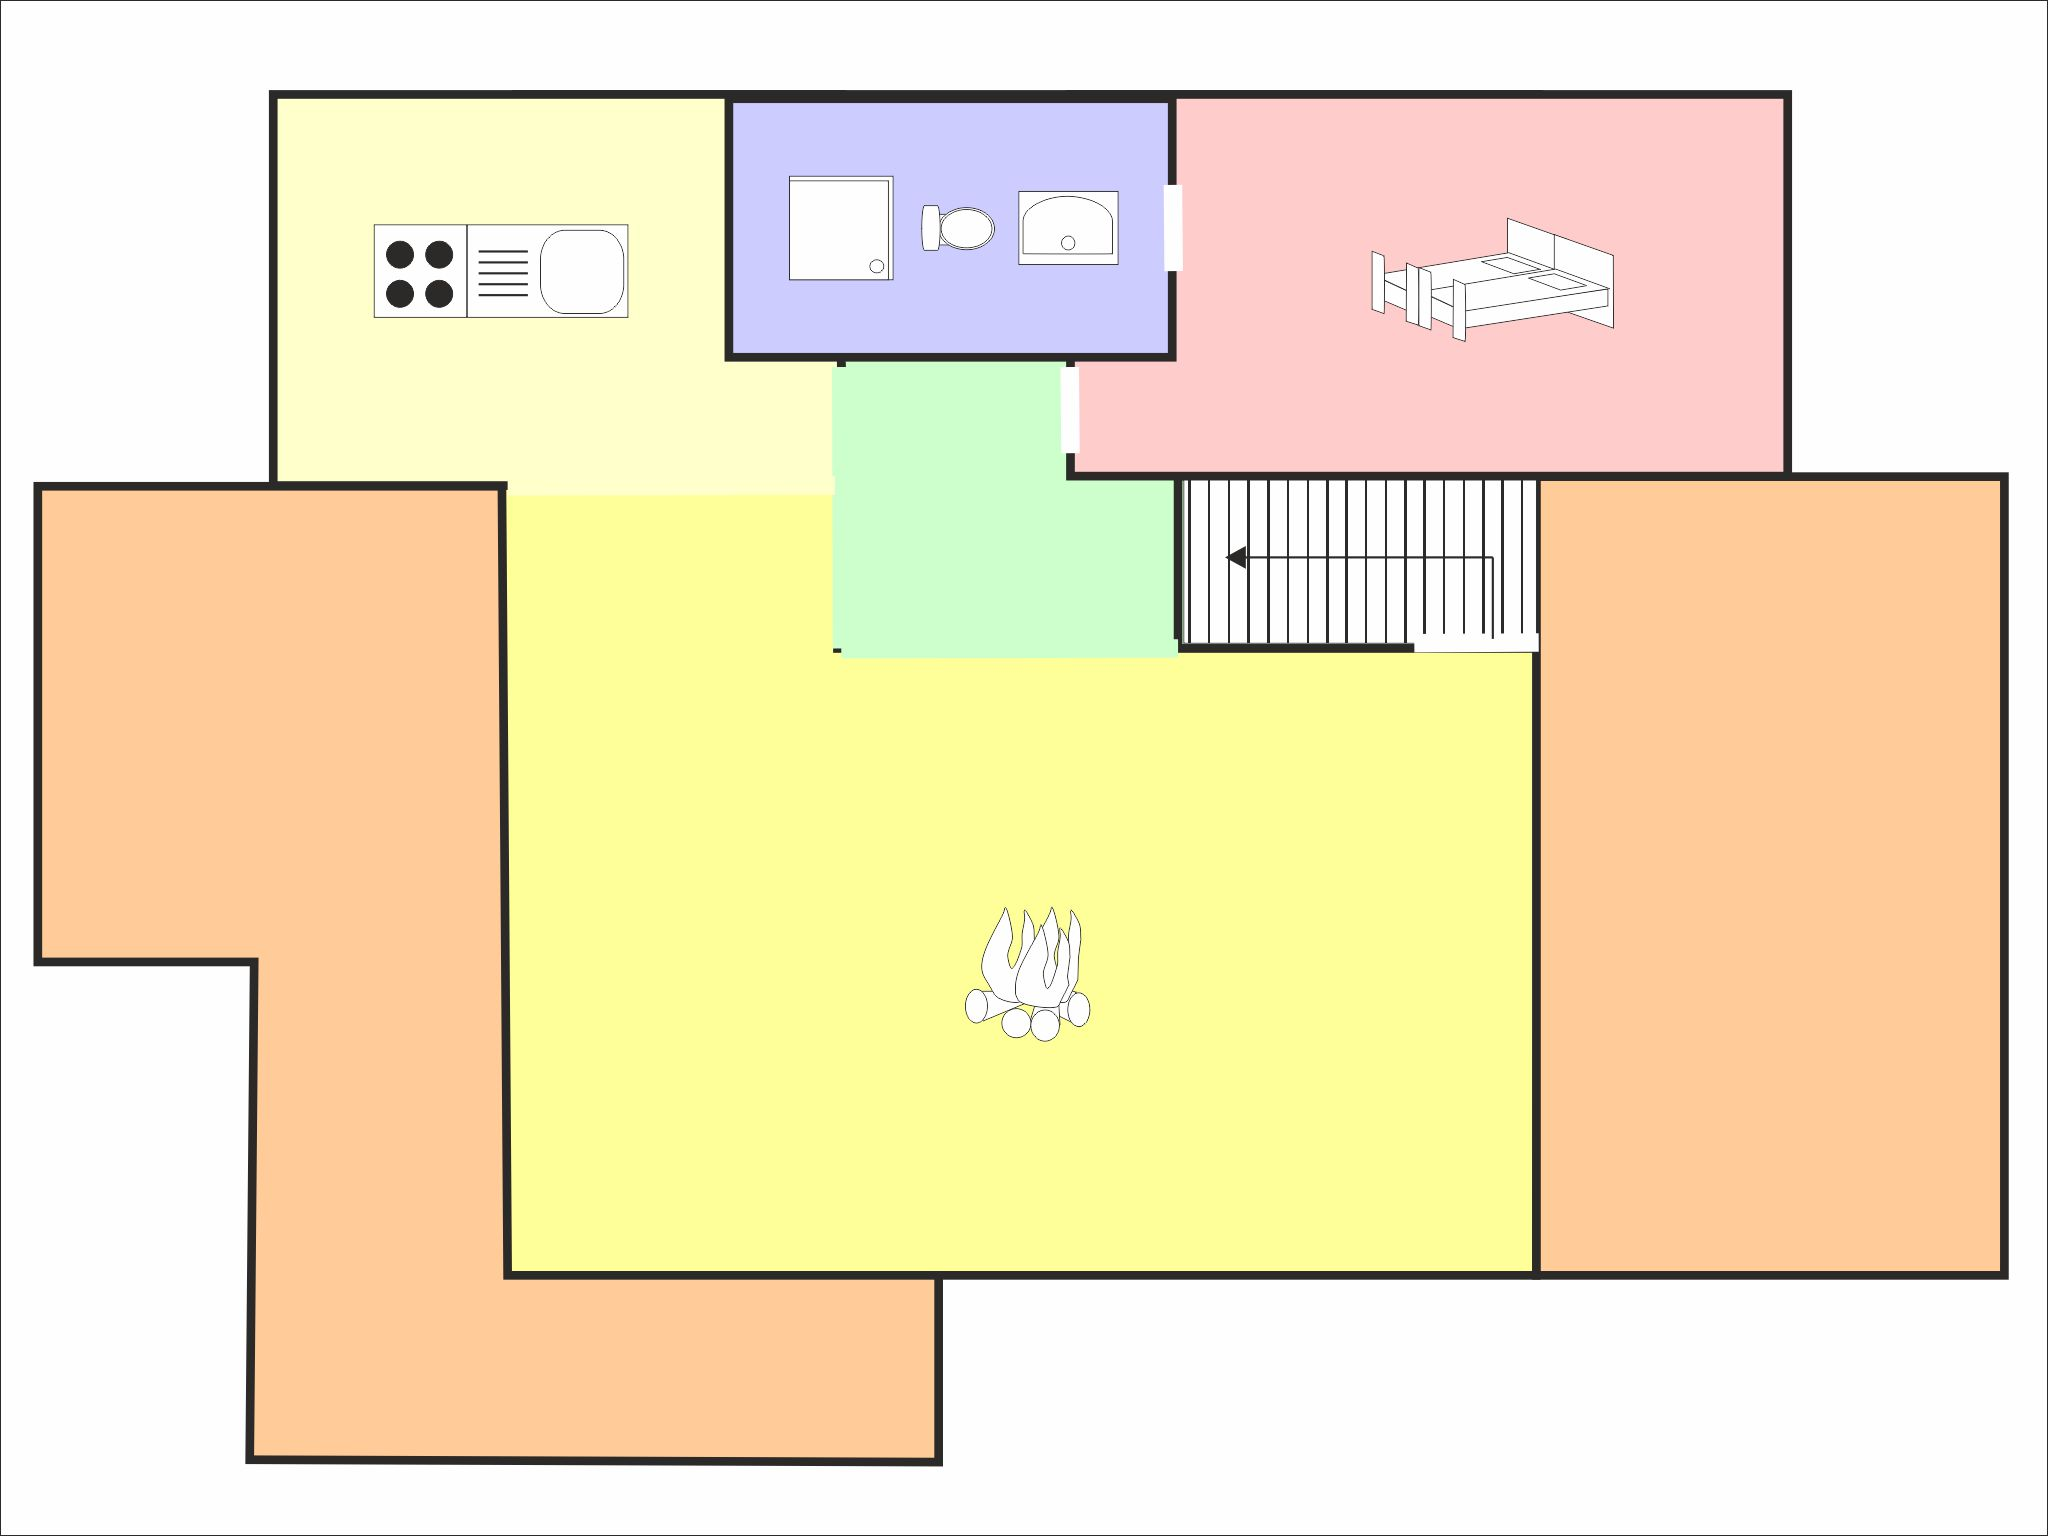 Chalet Barbara - floor plan - level 2